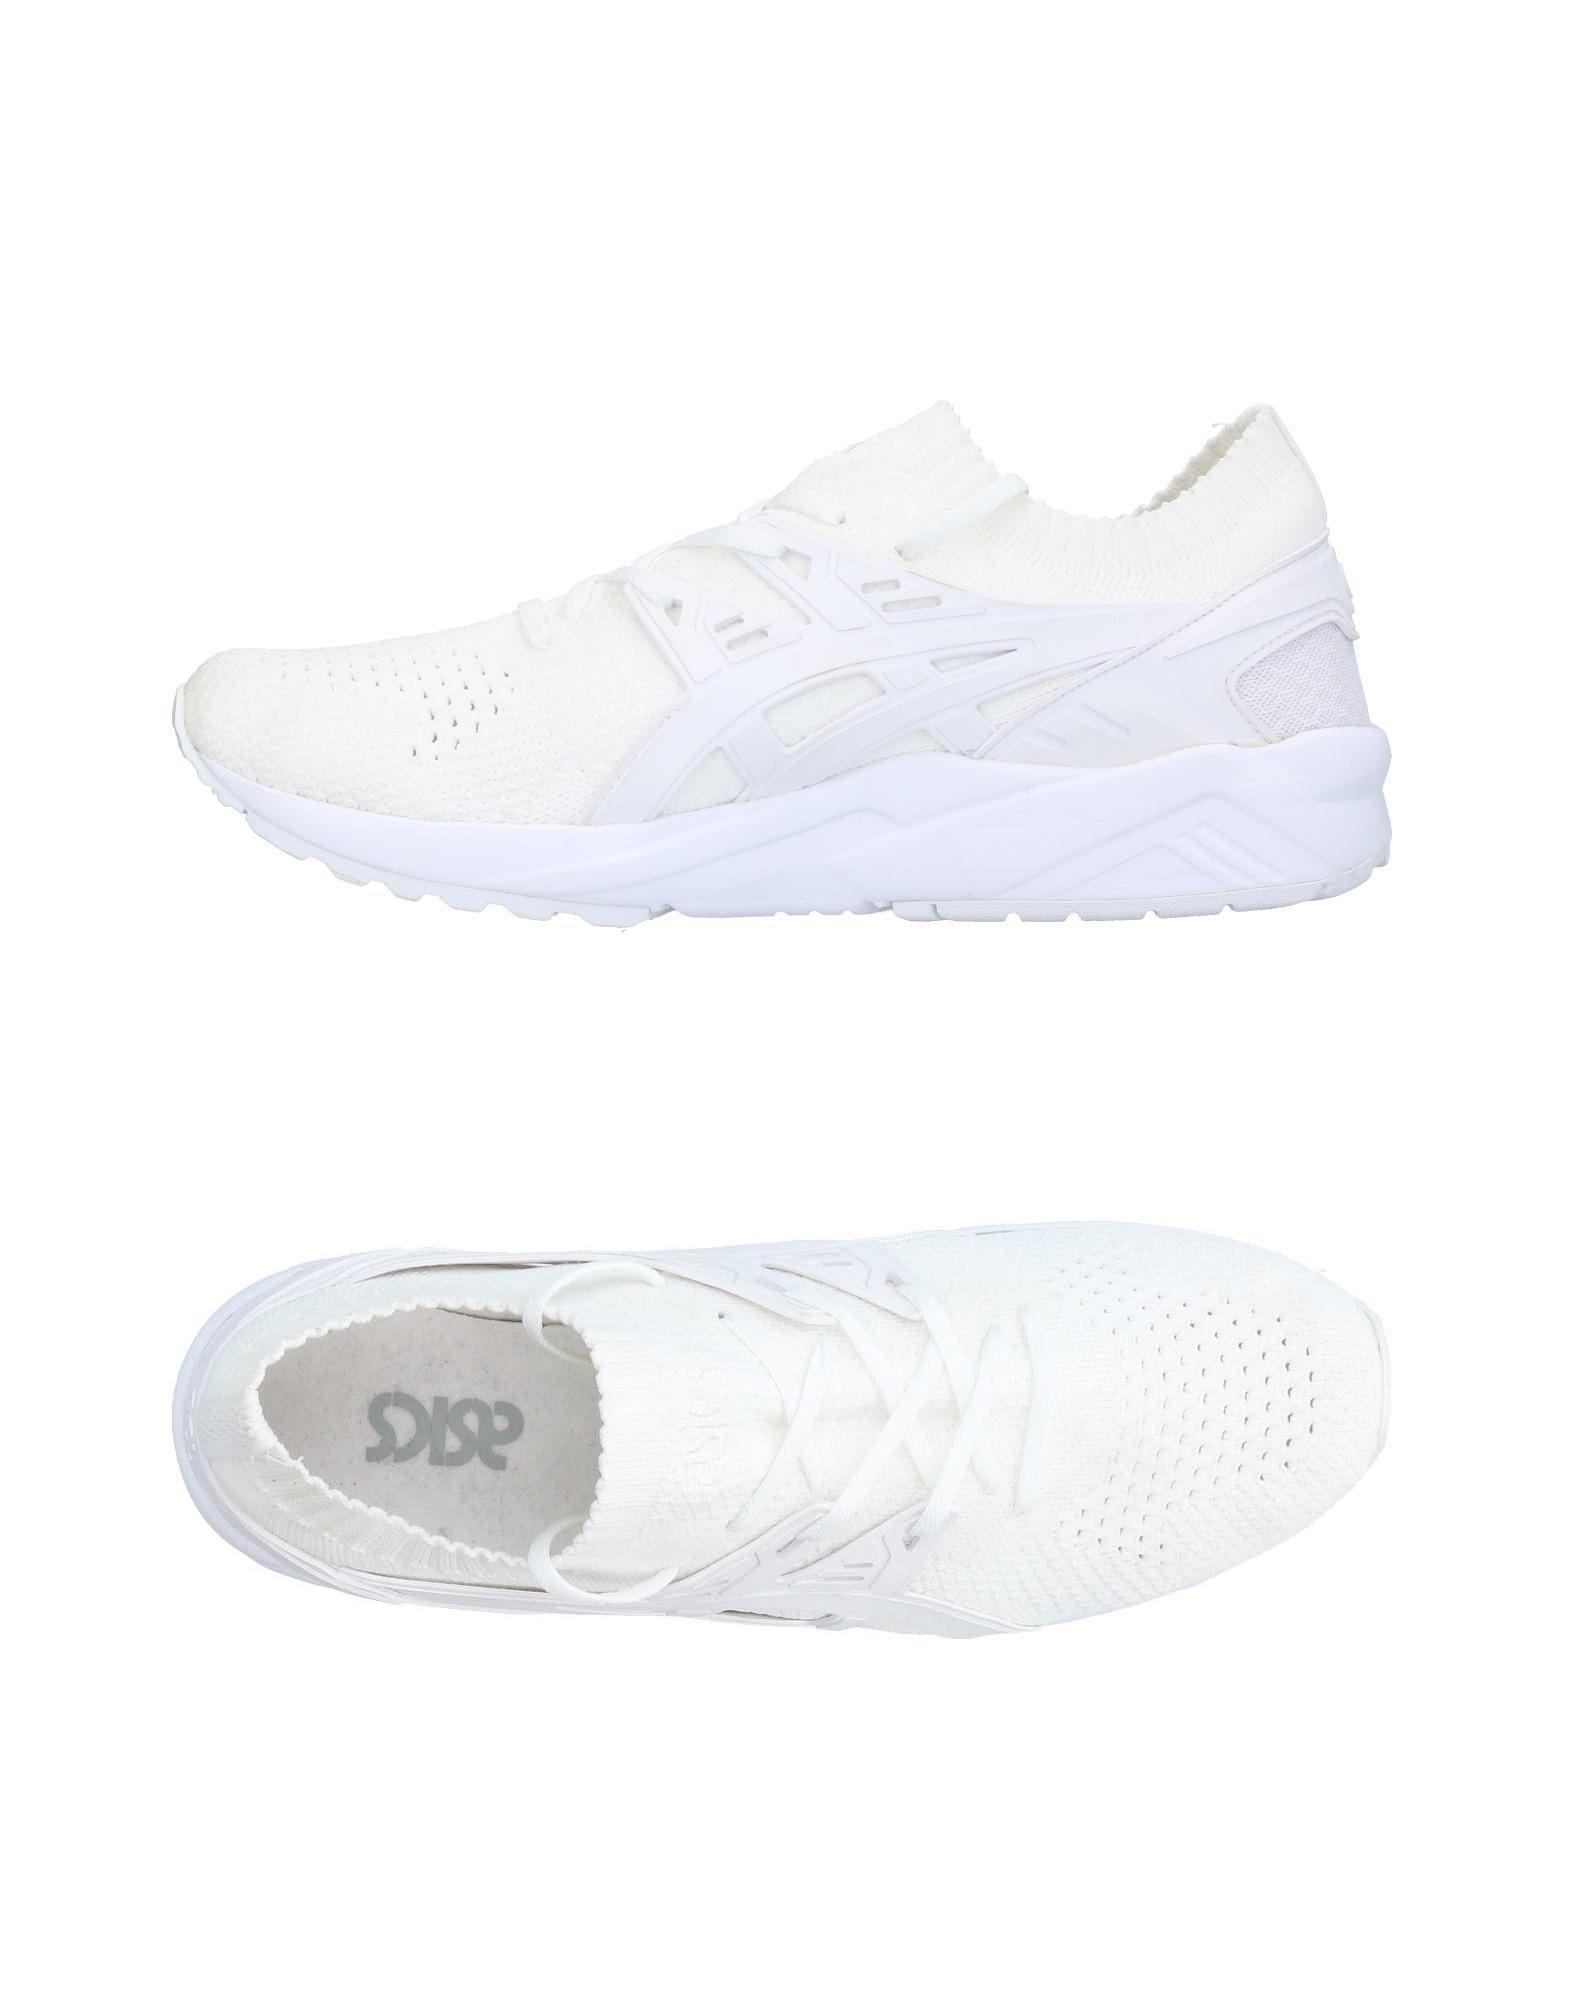 new arrival 12ffe 821e2 Men's Gel-Kayano Trainer Knit Low Casual Shoes, White